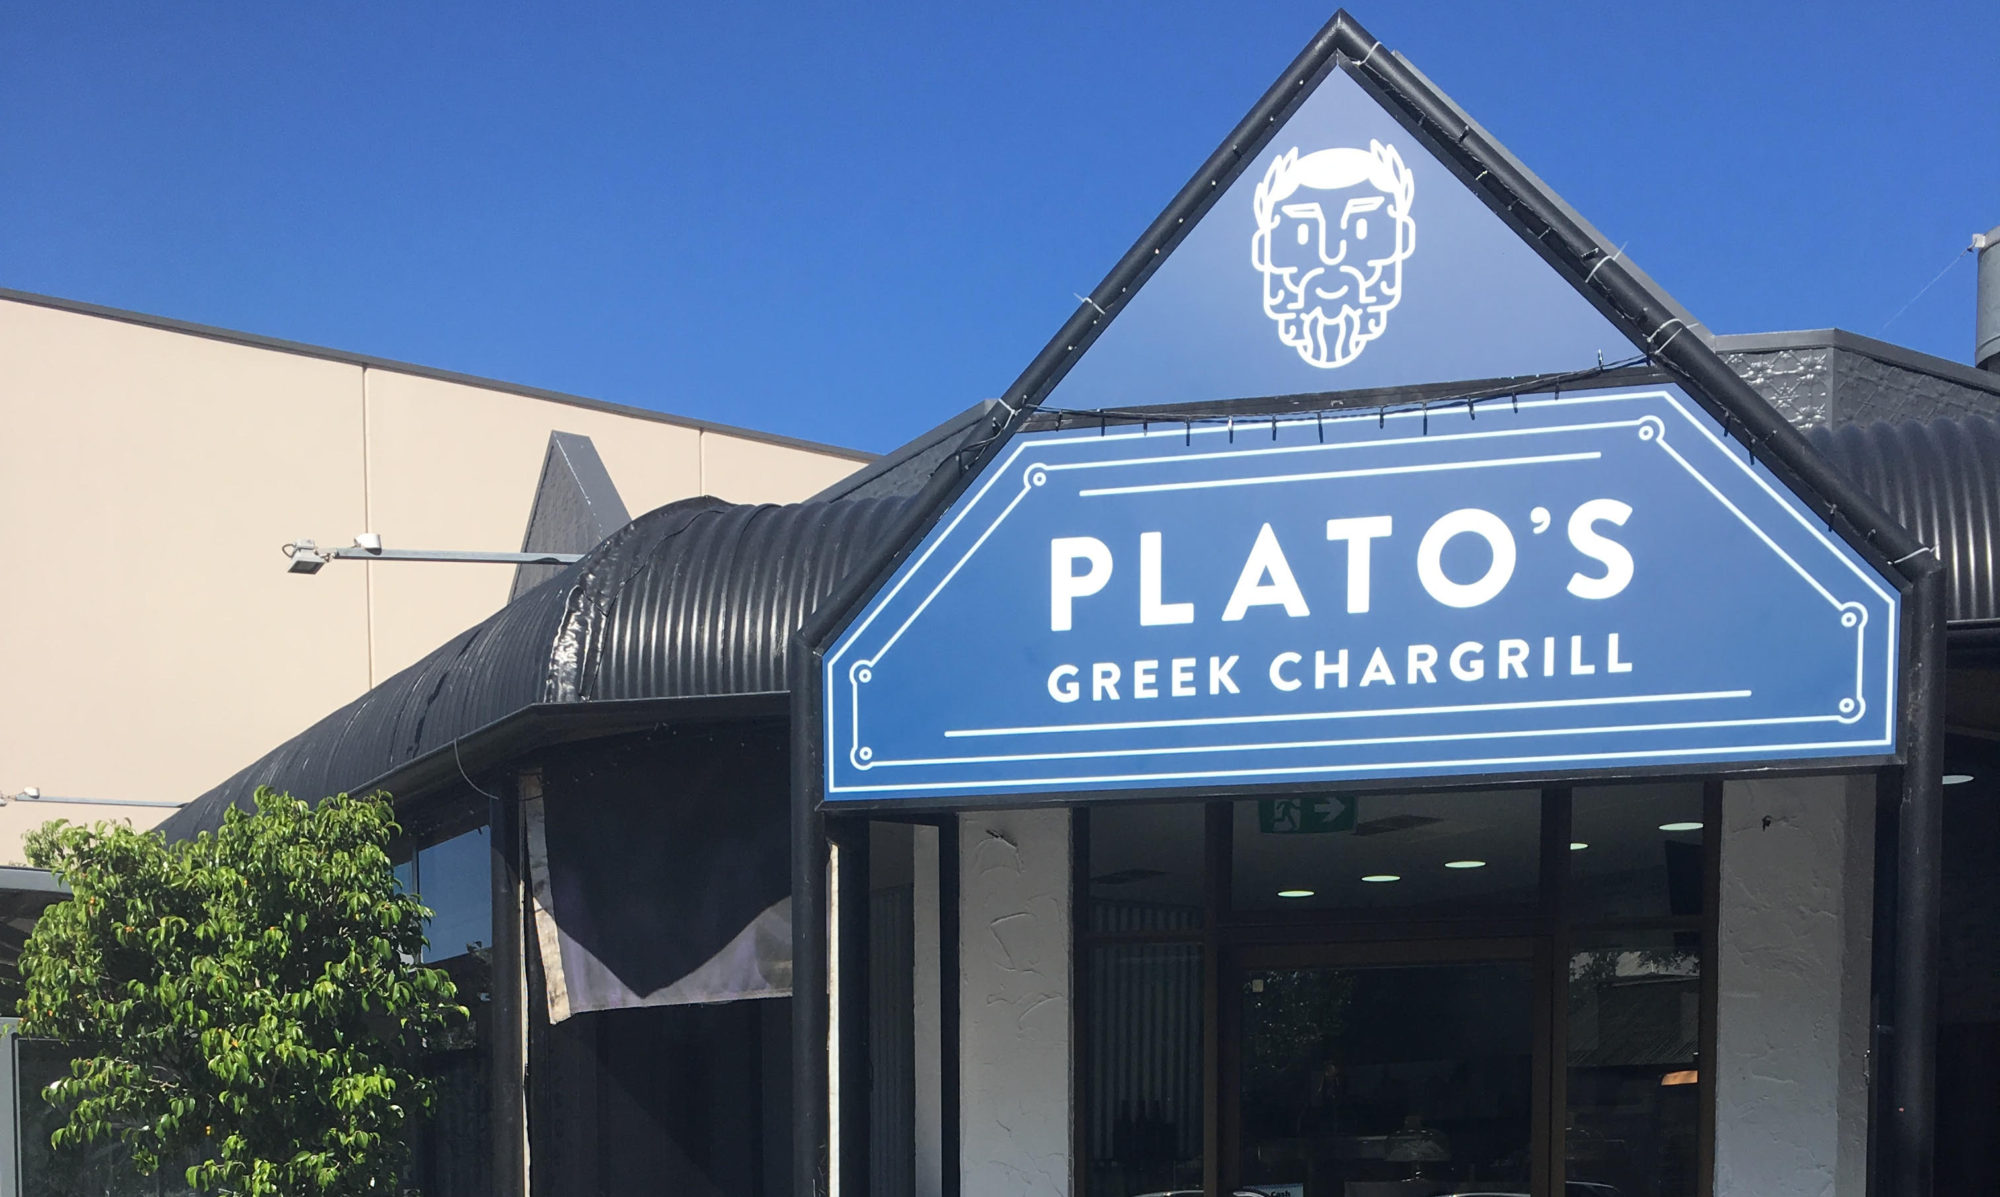 Plato's Greek Chargrill